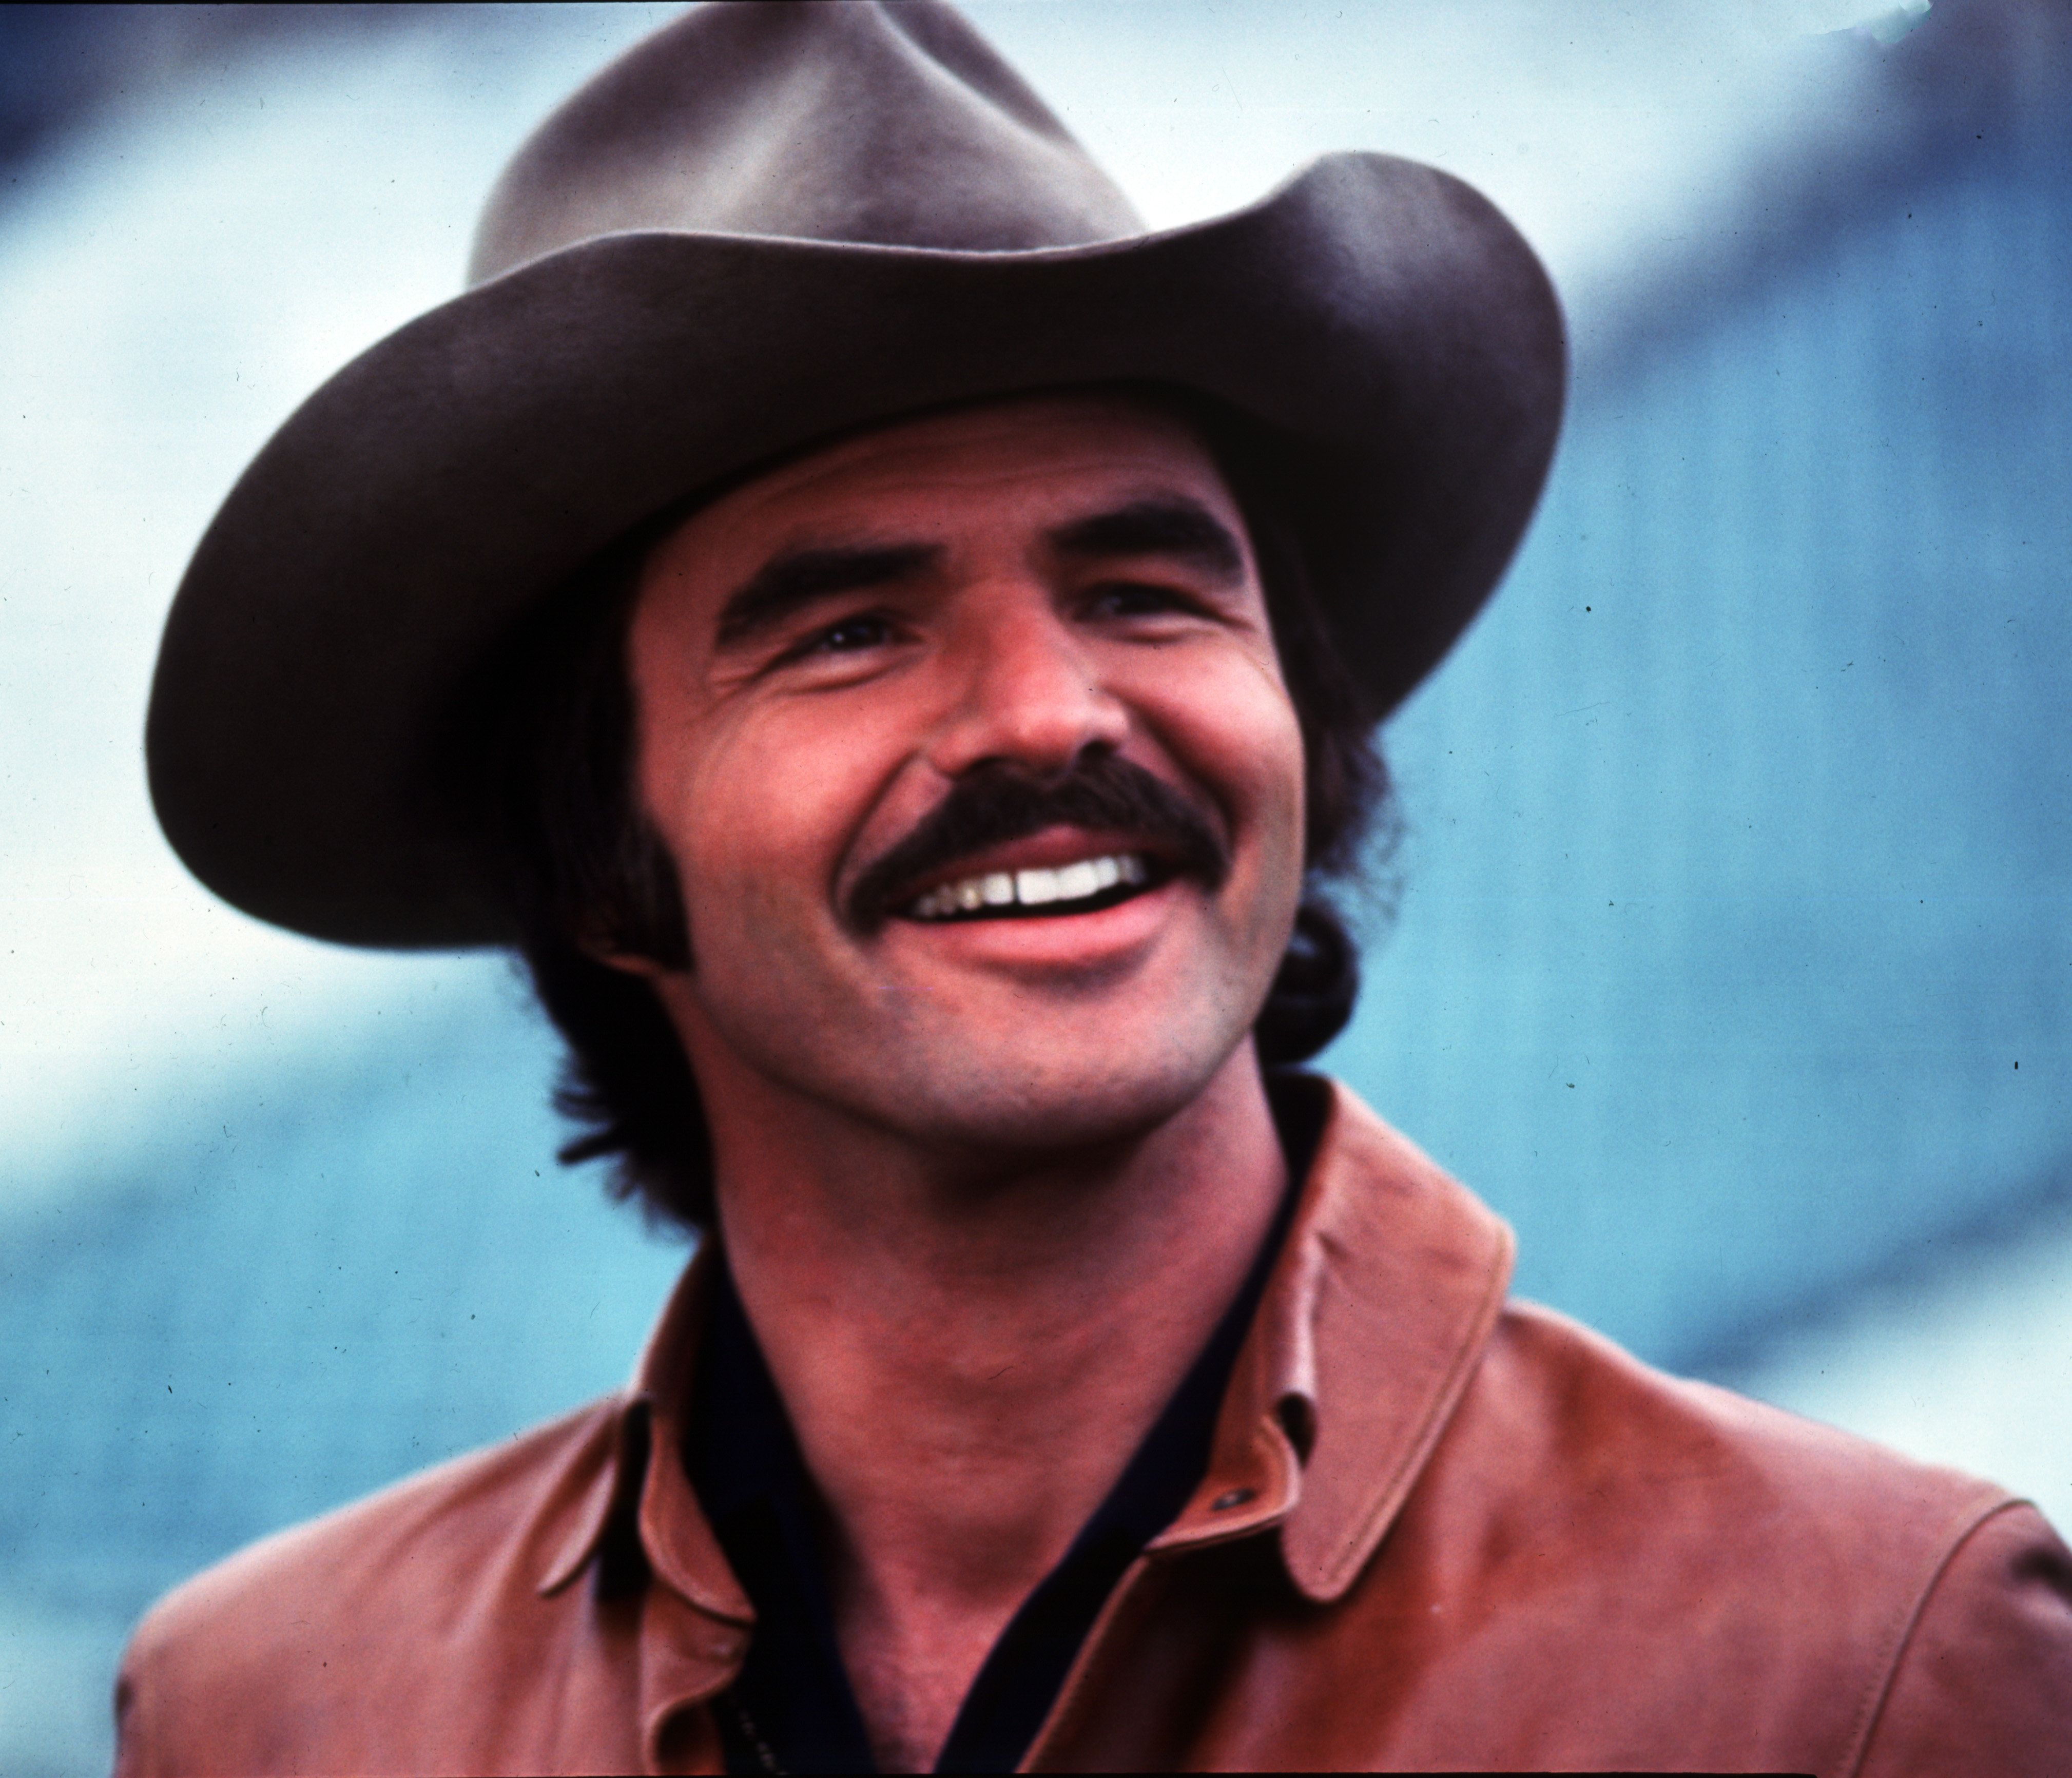 Burt Reynolds Dead - Famed Actor Passes Away at 82